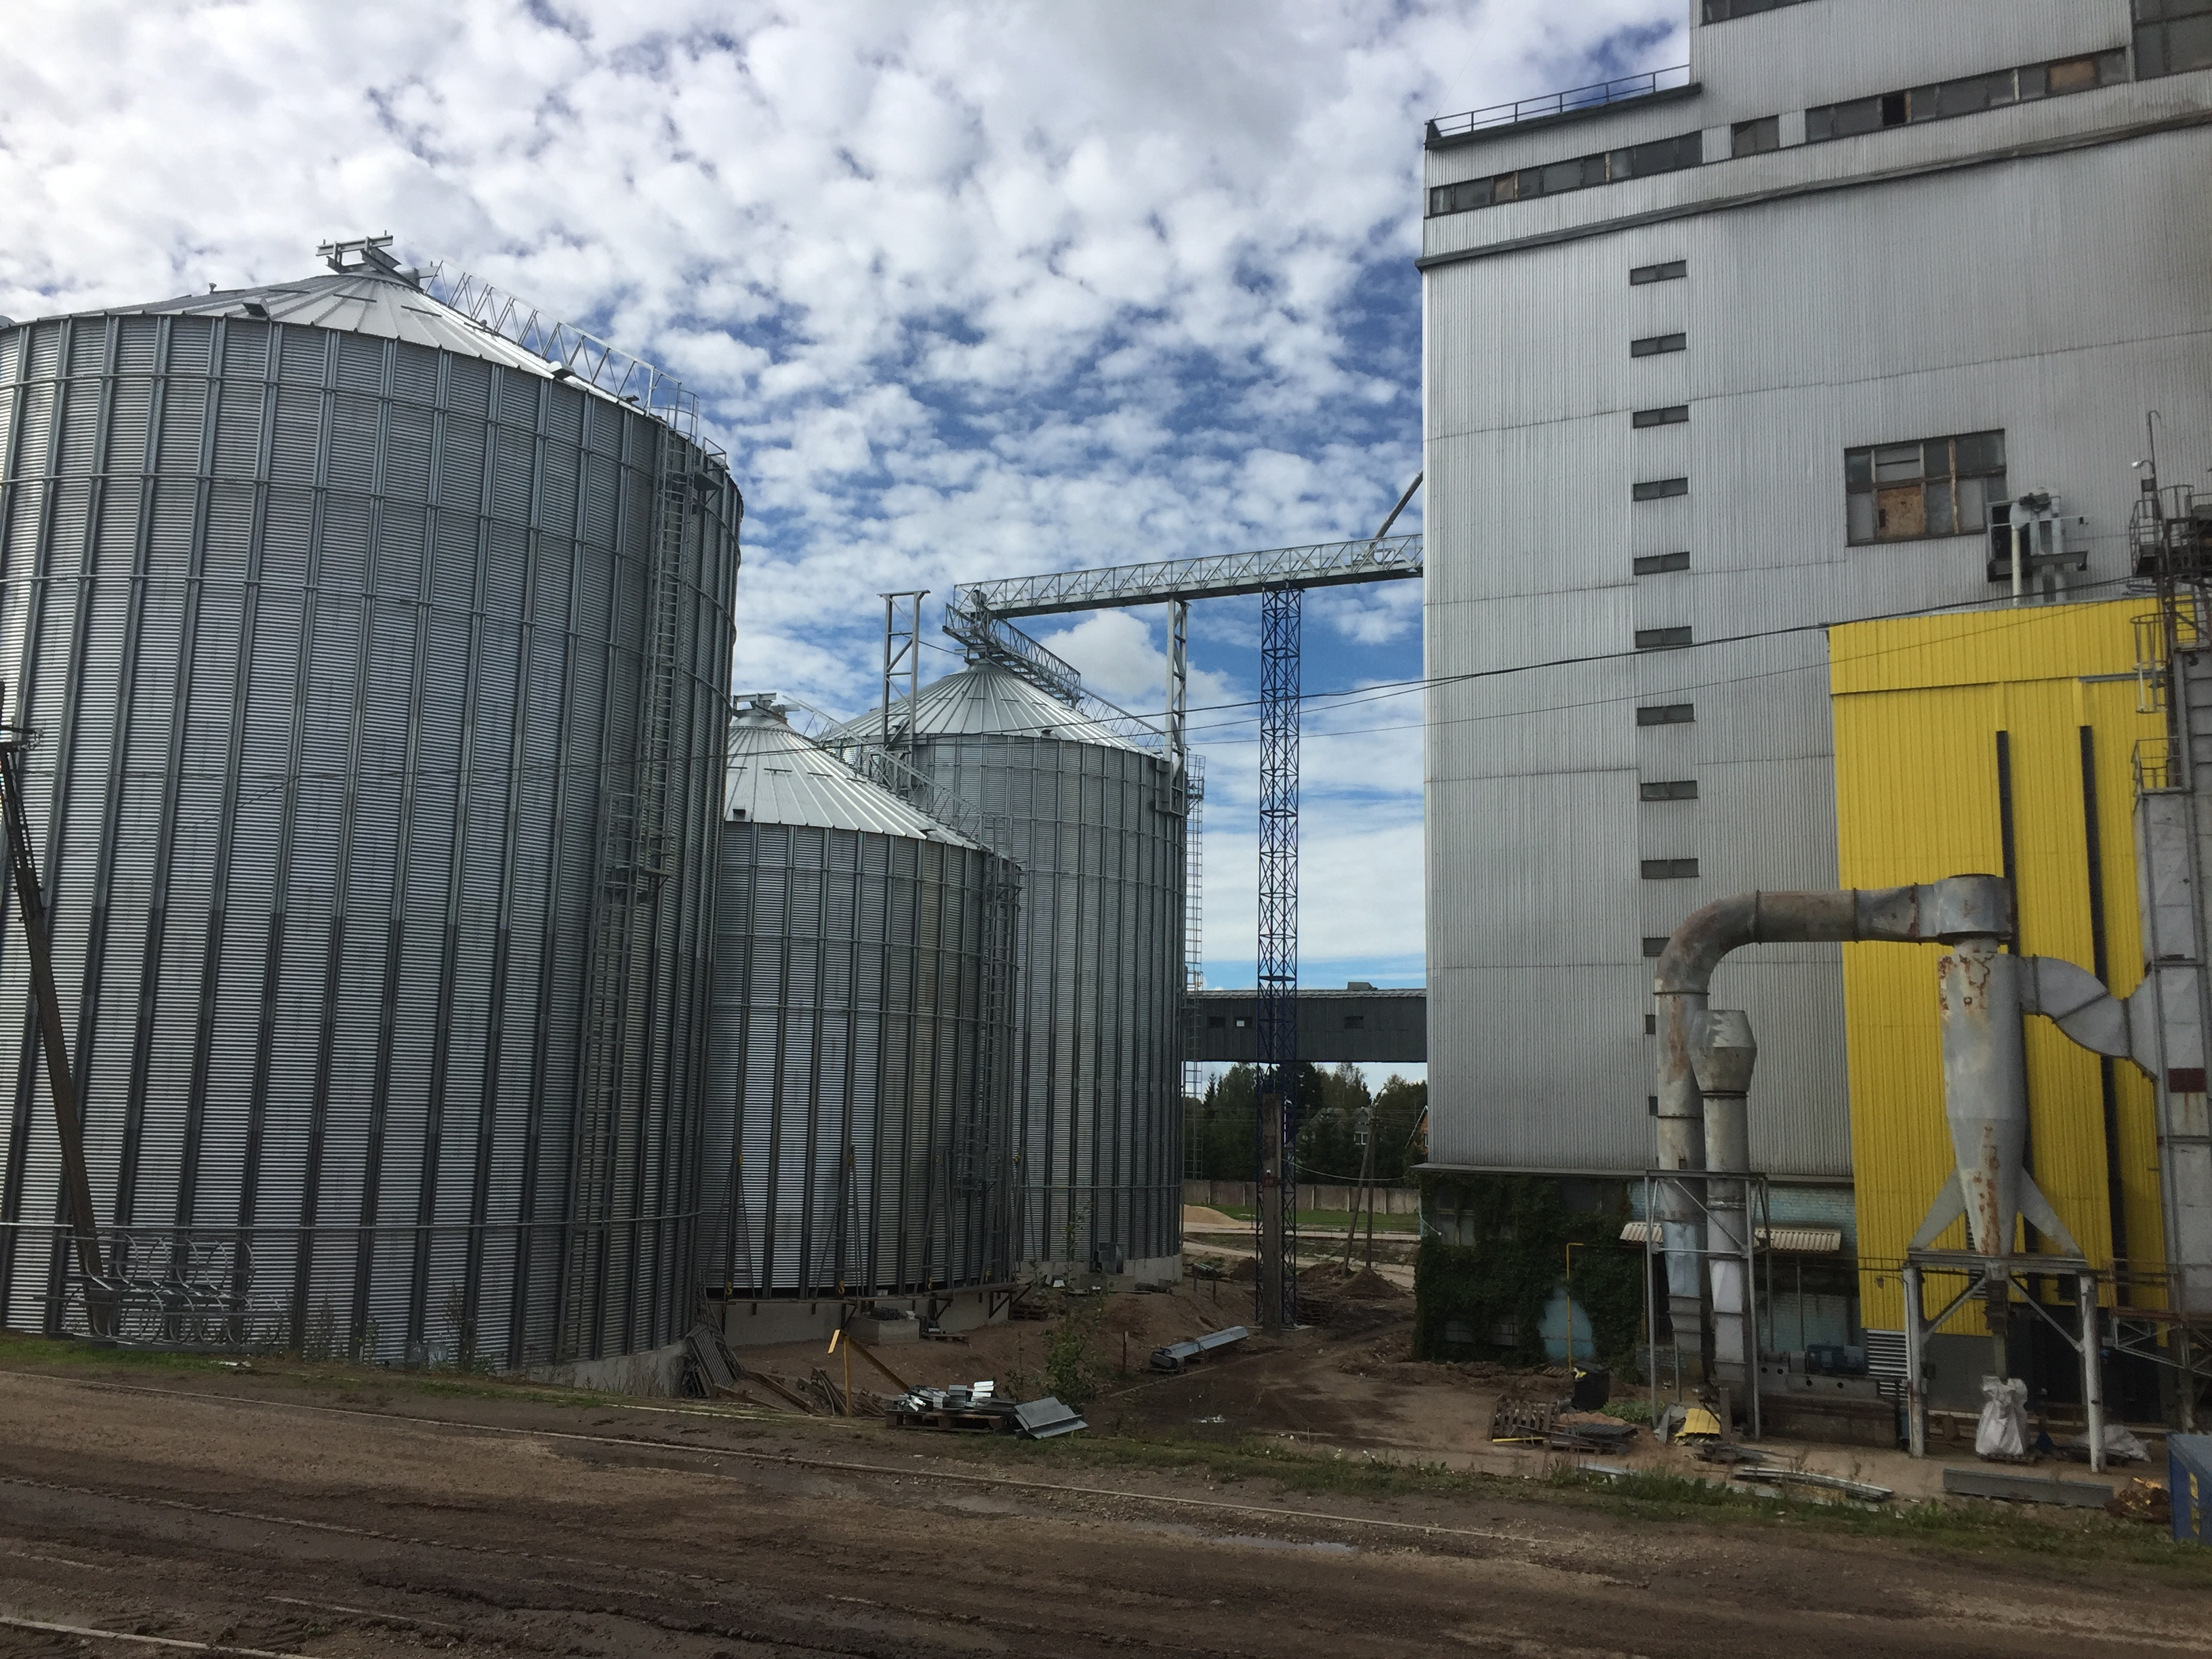 Grain silos and dryer assembling, Scandagra